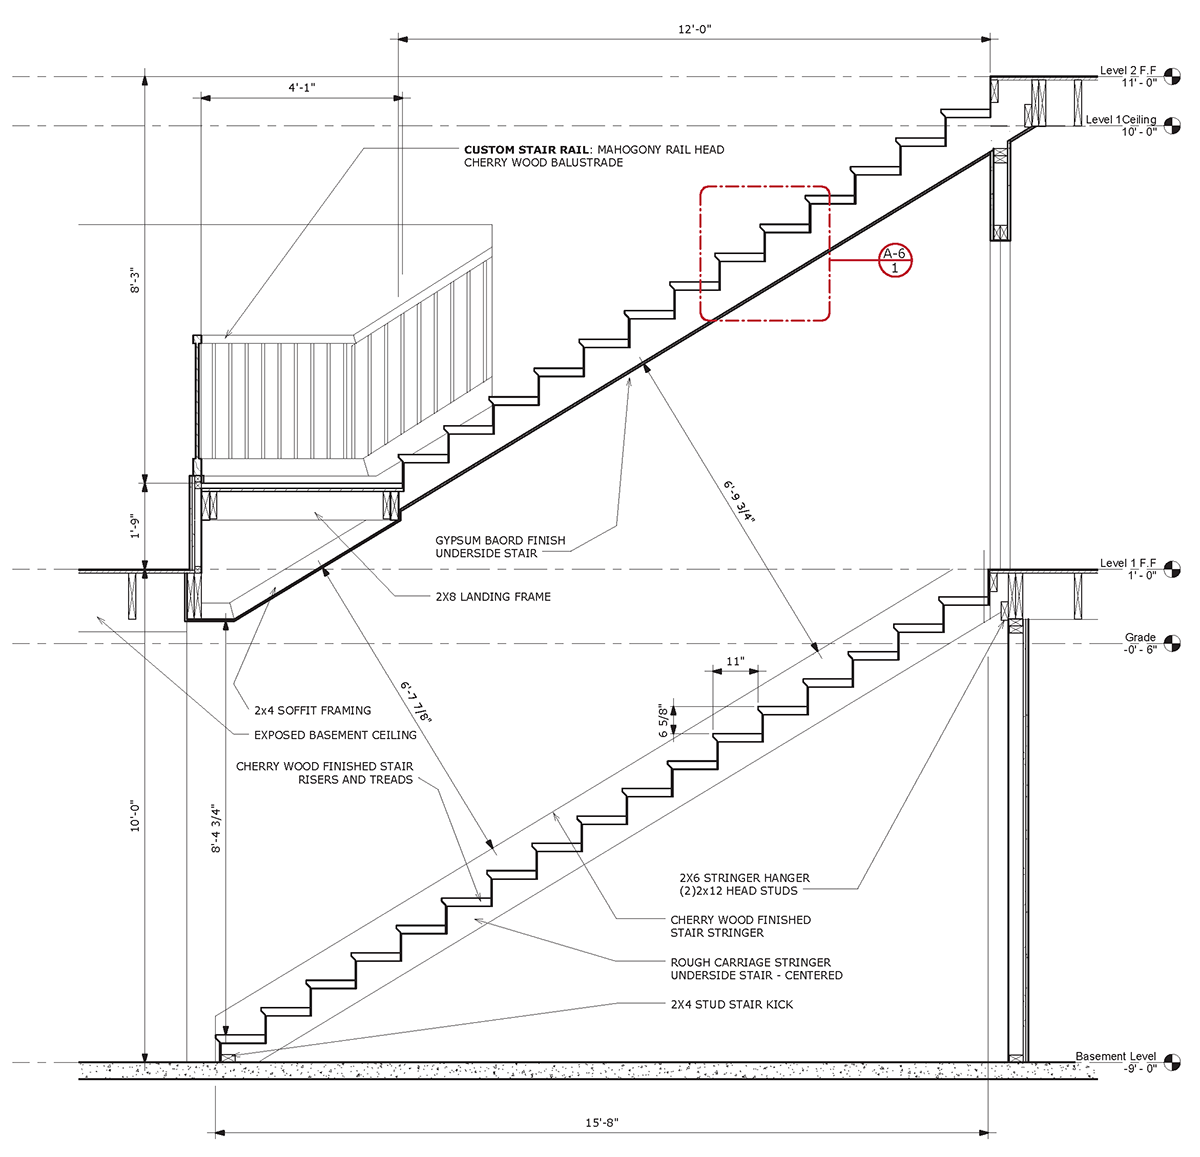 Residential Wood Framing Details